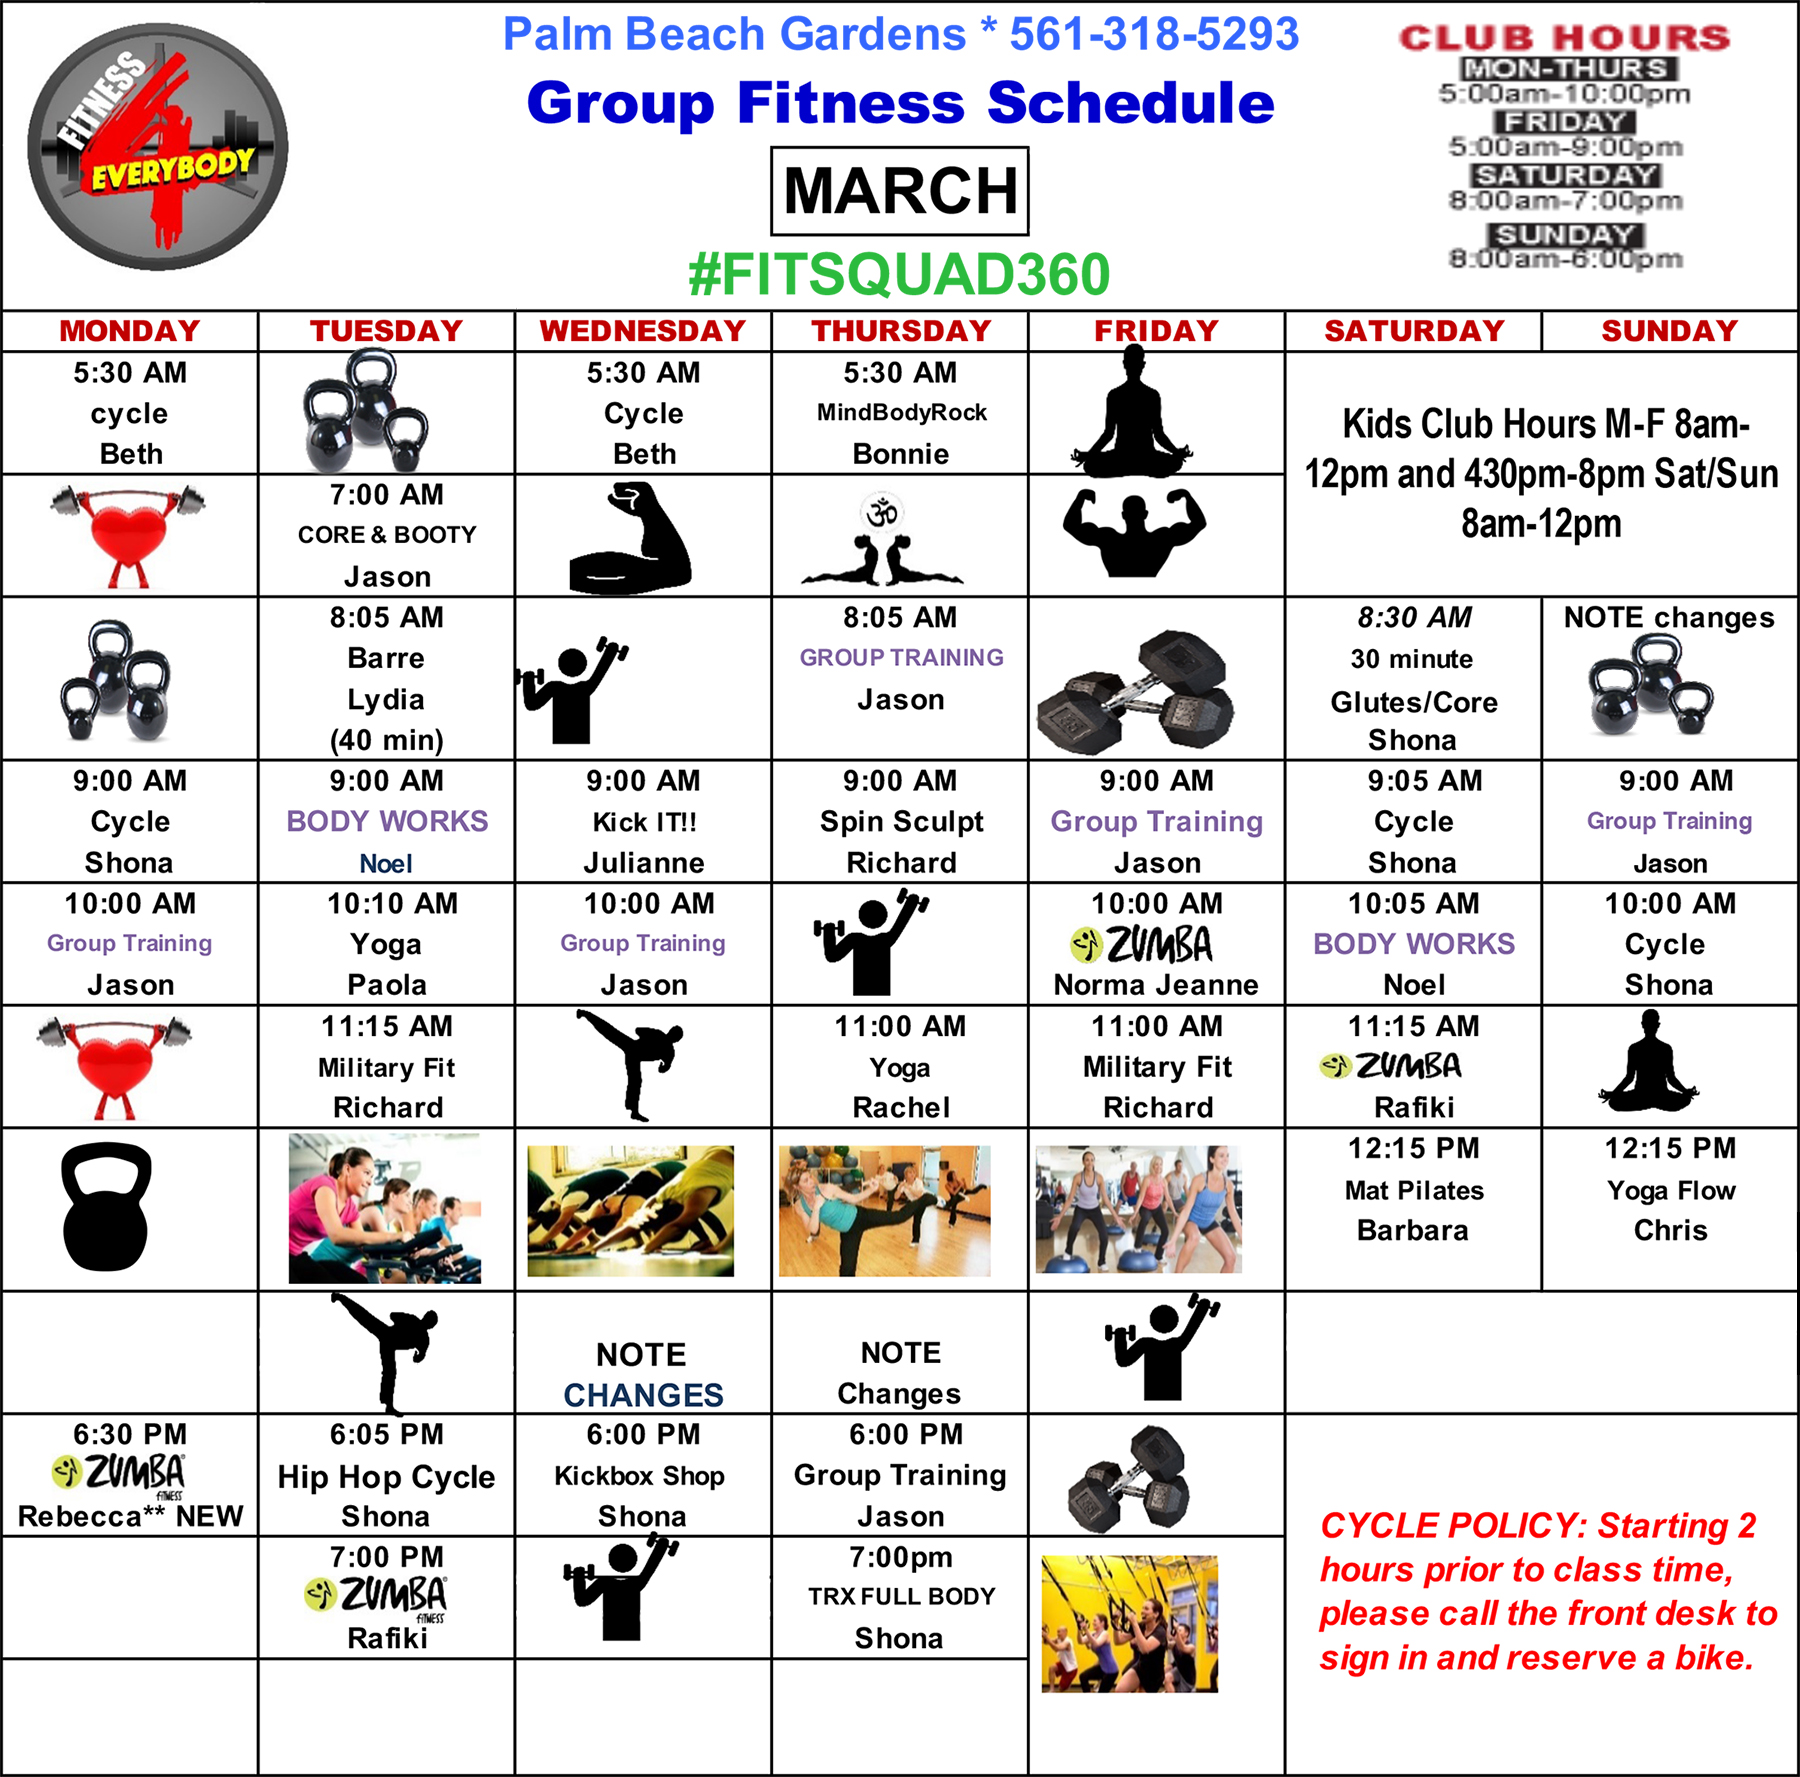 Fitness 4 Everybody Group Fitness Class Schedule for March 2020